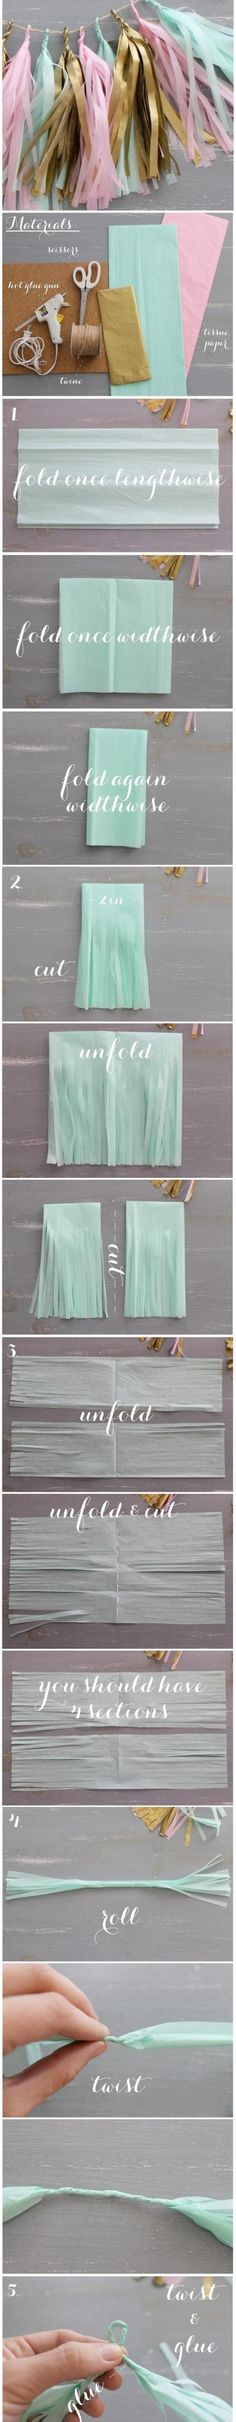 10 DIY Party Crafts DIY Tassel Garland in pretty pastels. Perfect for any celebration from baby showers to first birthday parties.DIY Tassel Garland in pretty pastels. Perfect for any celebration from baby showers to first birthday parties. Unicorn Birthday Parties, First Birthday Parties, Girl Birthday, First Birthdays, Birthday Diy, Birthday Gifts, Birthday Candles, Birthday Celebration, Diy Unicorn Party